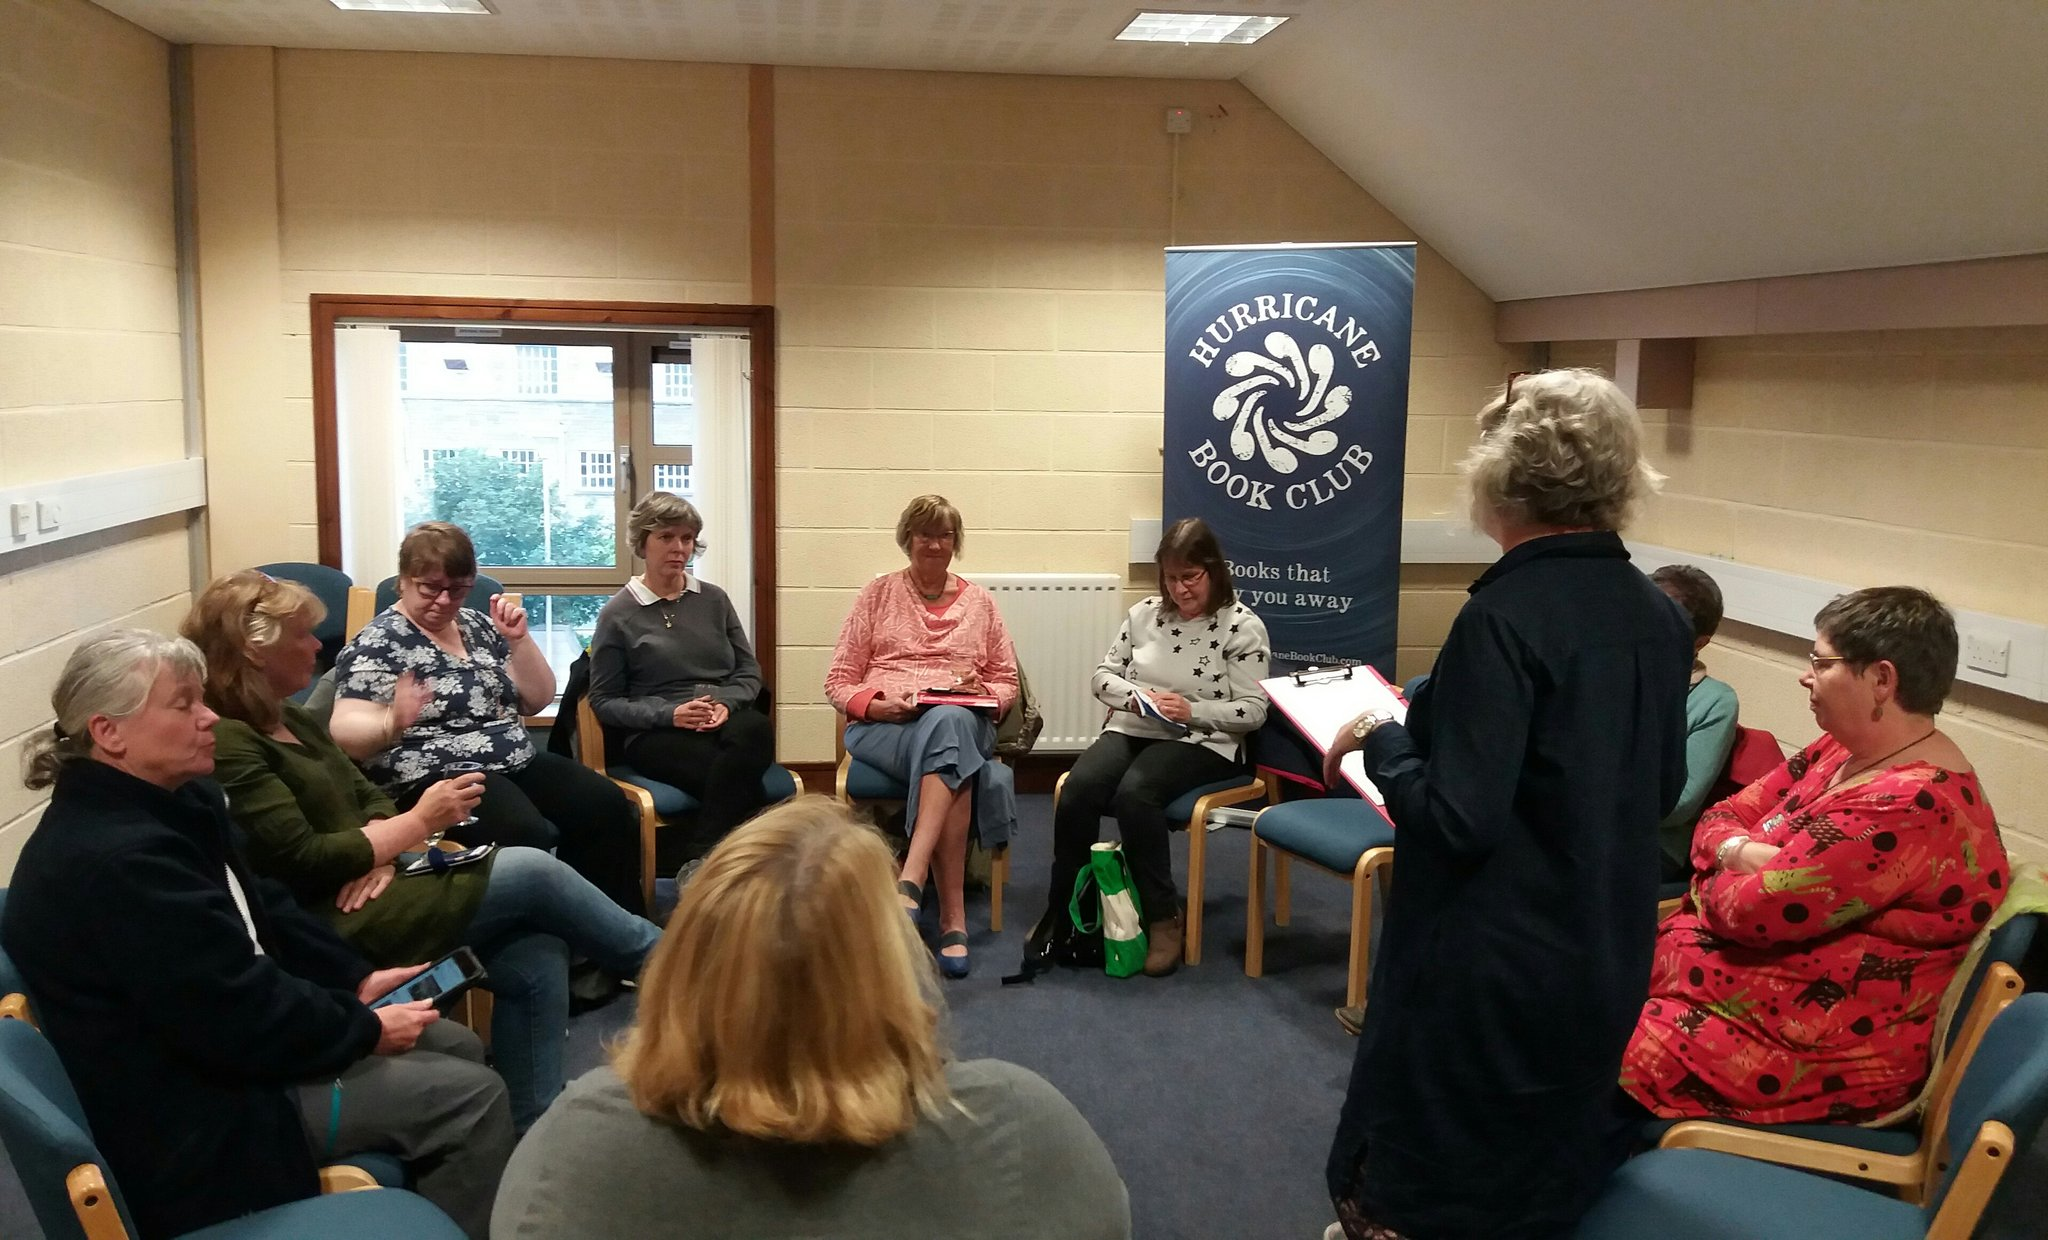 In #Orkney we're all ready to get started at #hurricanebookclub discussing Follow the Dead by @Lin_Anderson! https://t.co/sSkpSGzix3